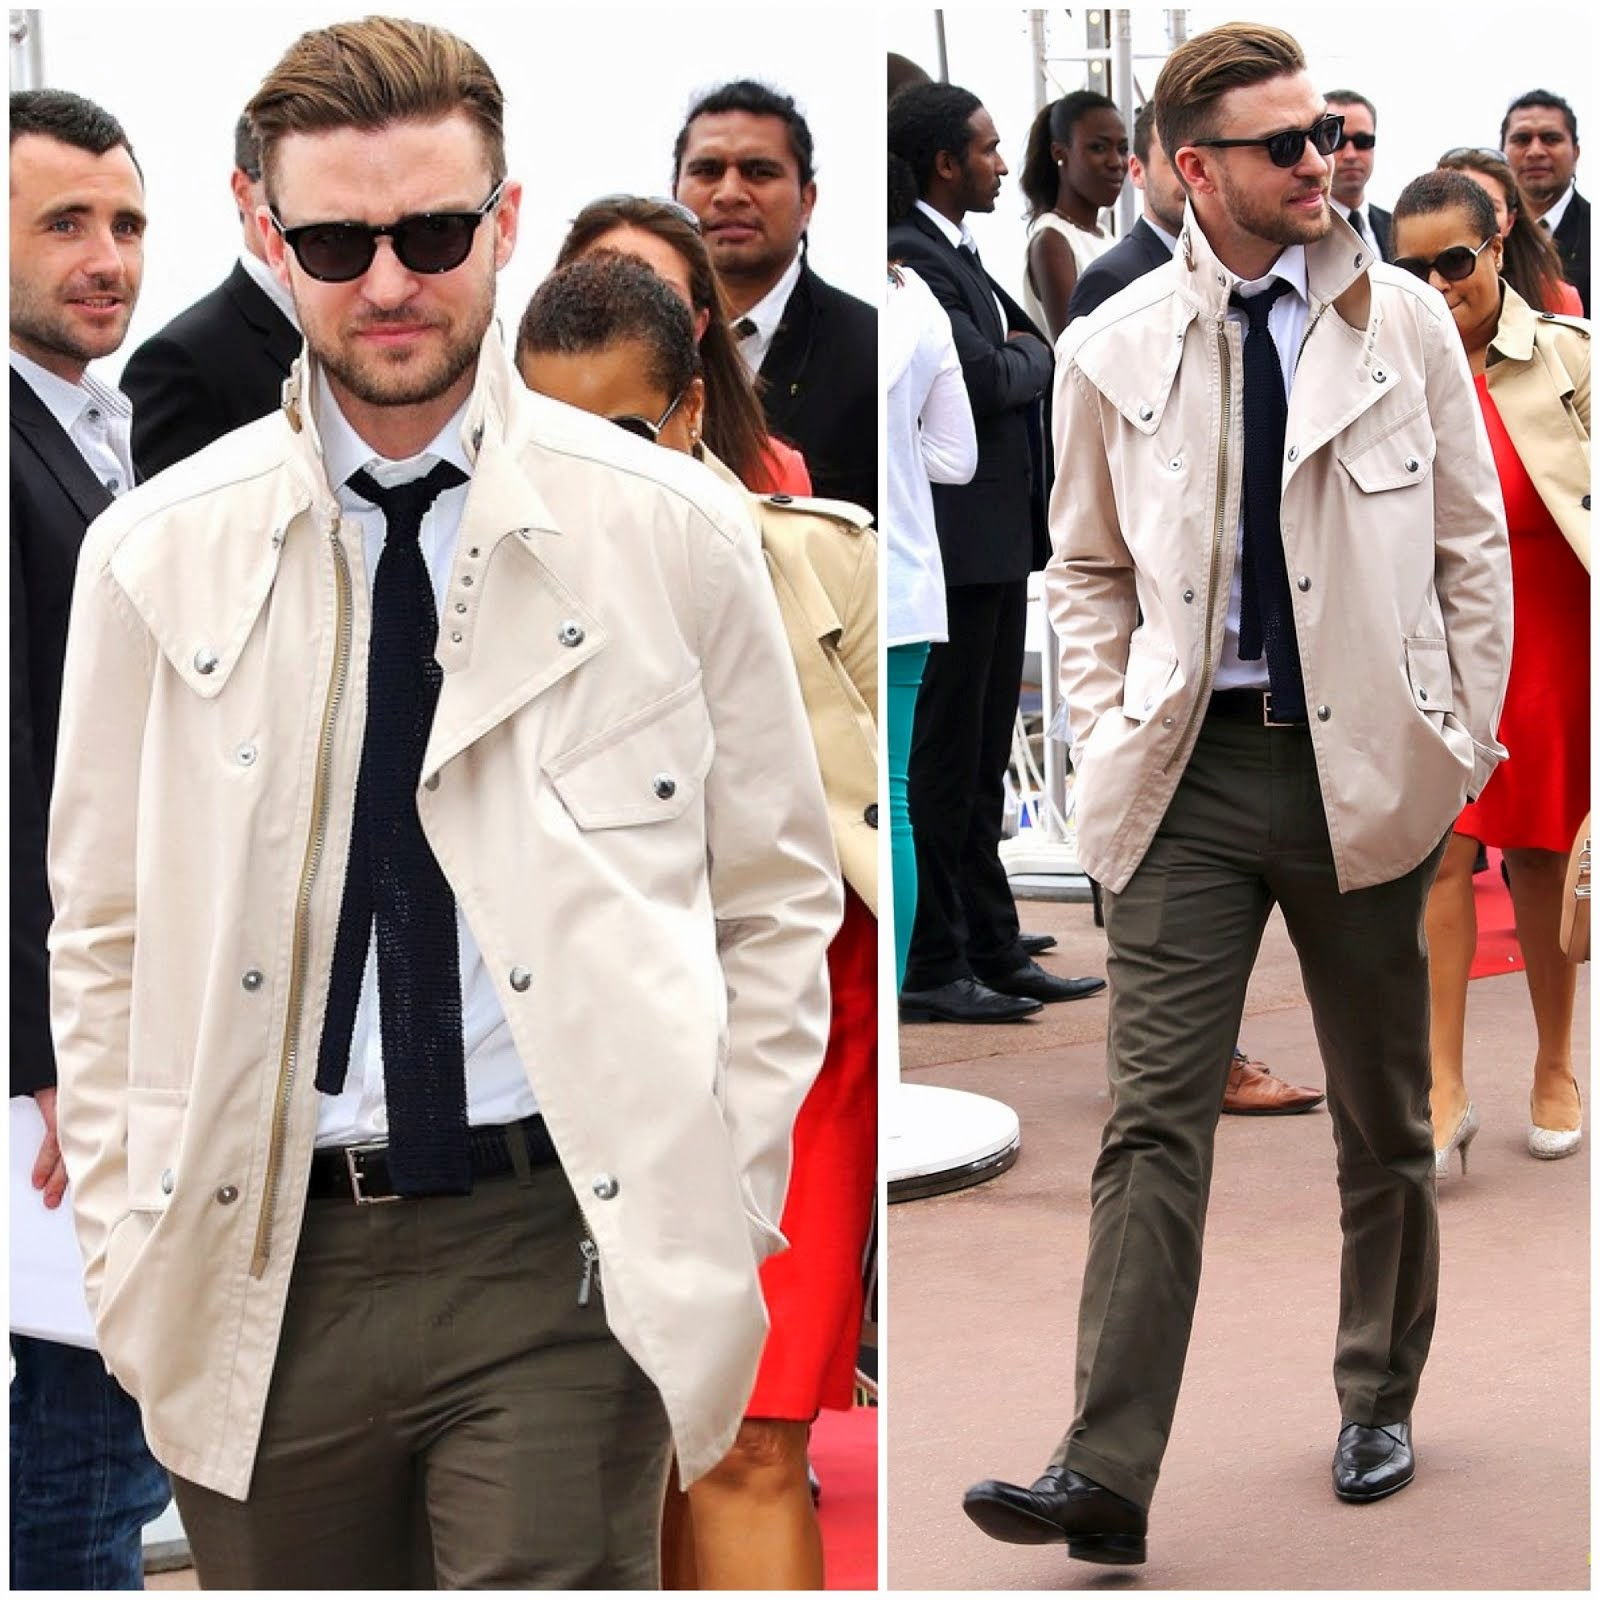 00O00 Menswear Blog: Justin Timberlake in Belstaff - Torch Cannes 'Spinning Gold' Celebration May 2013